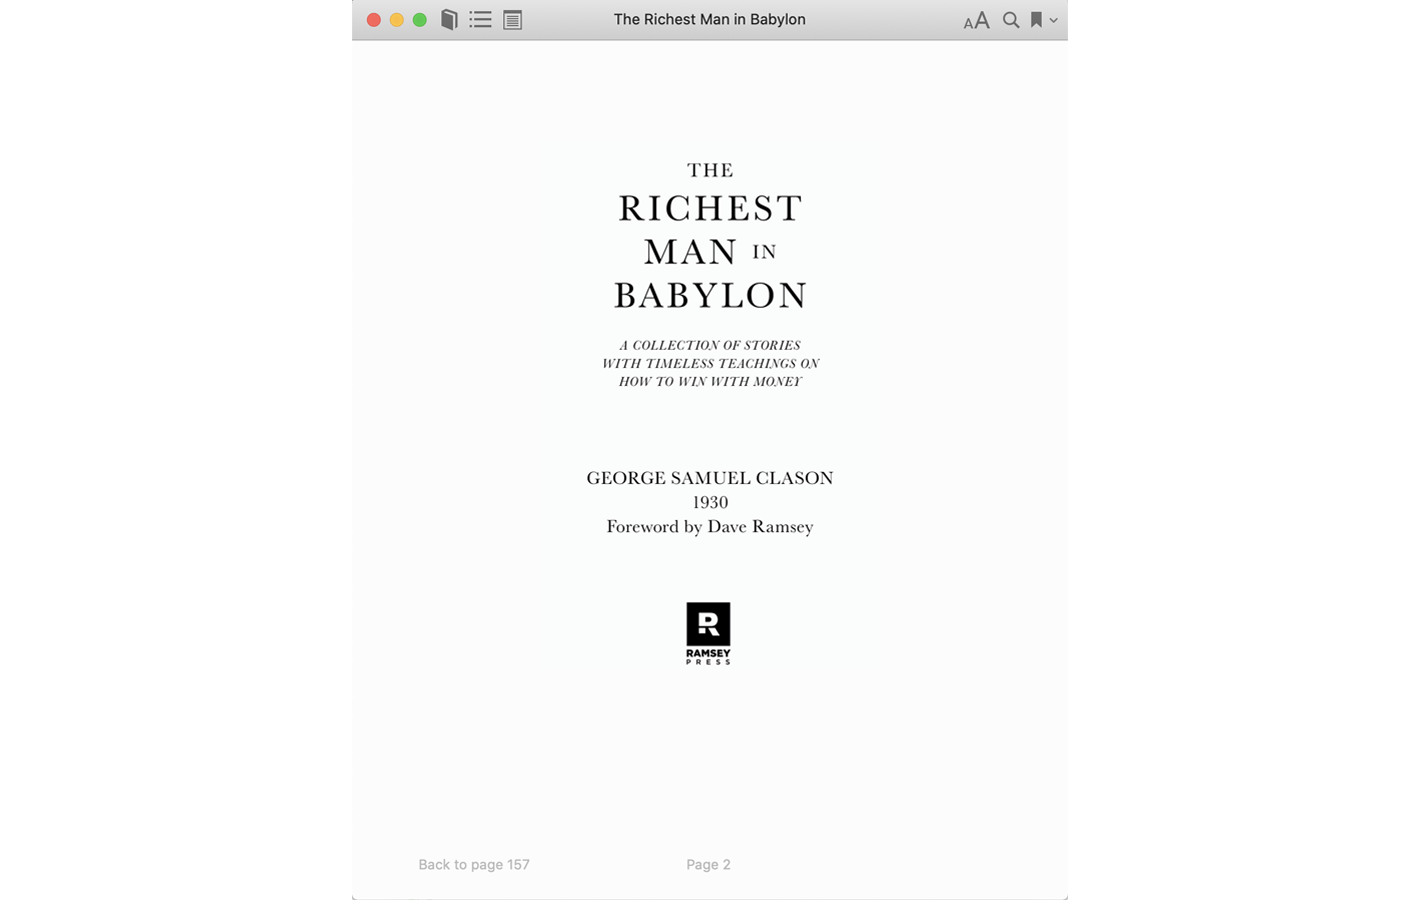 Title page for The Richest Man in Babylon